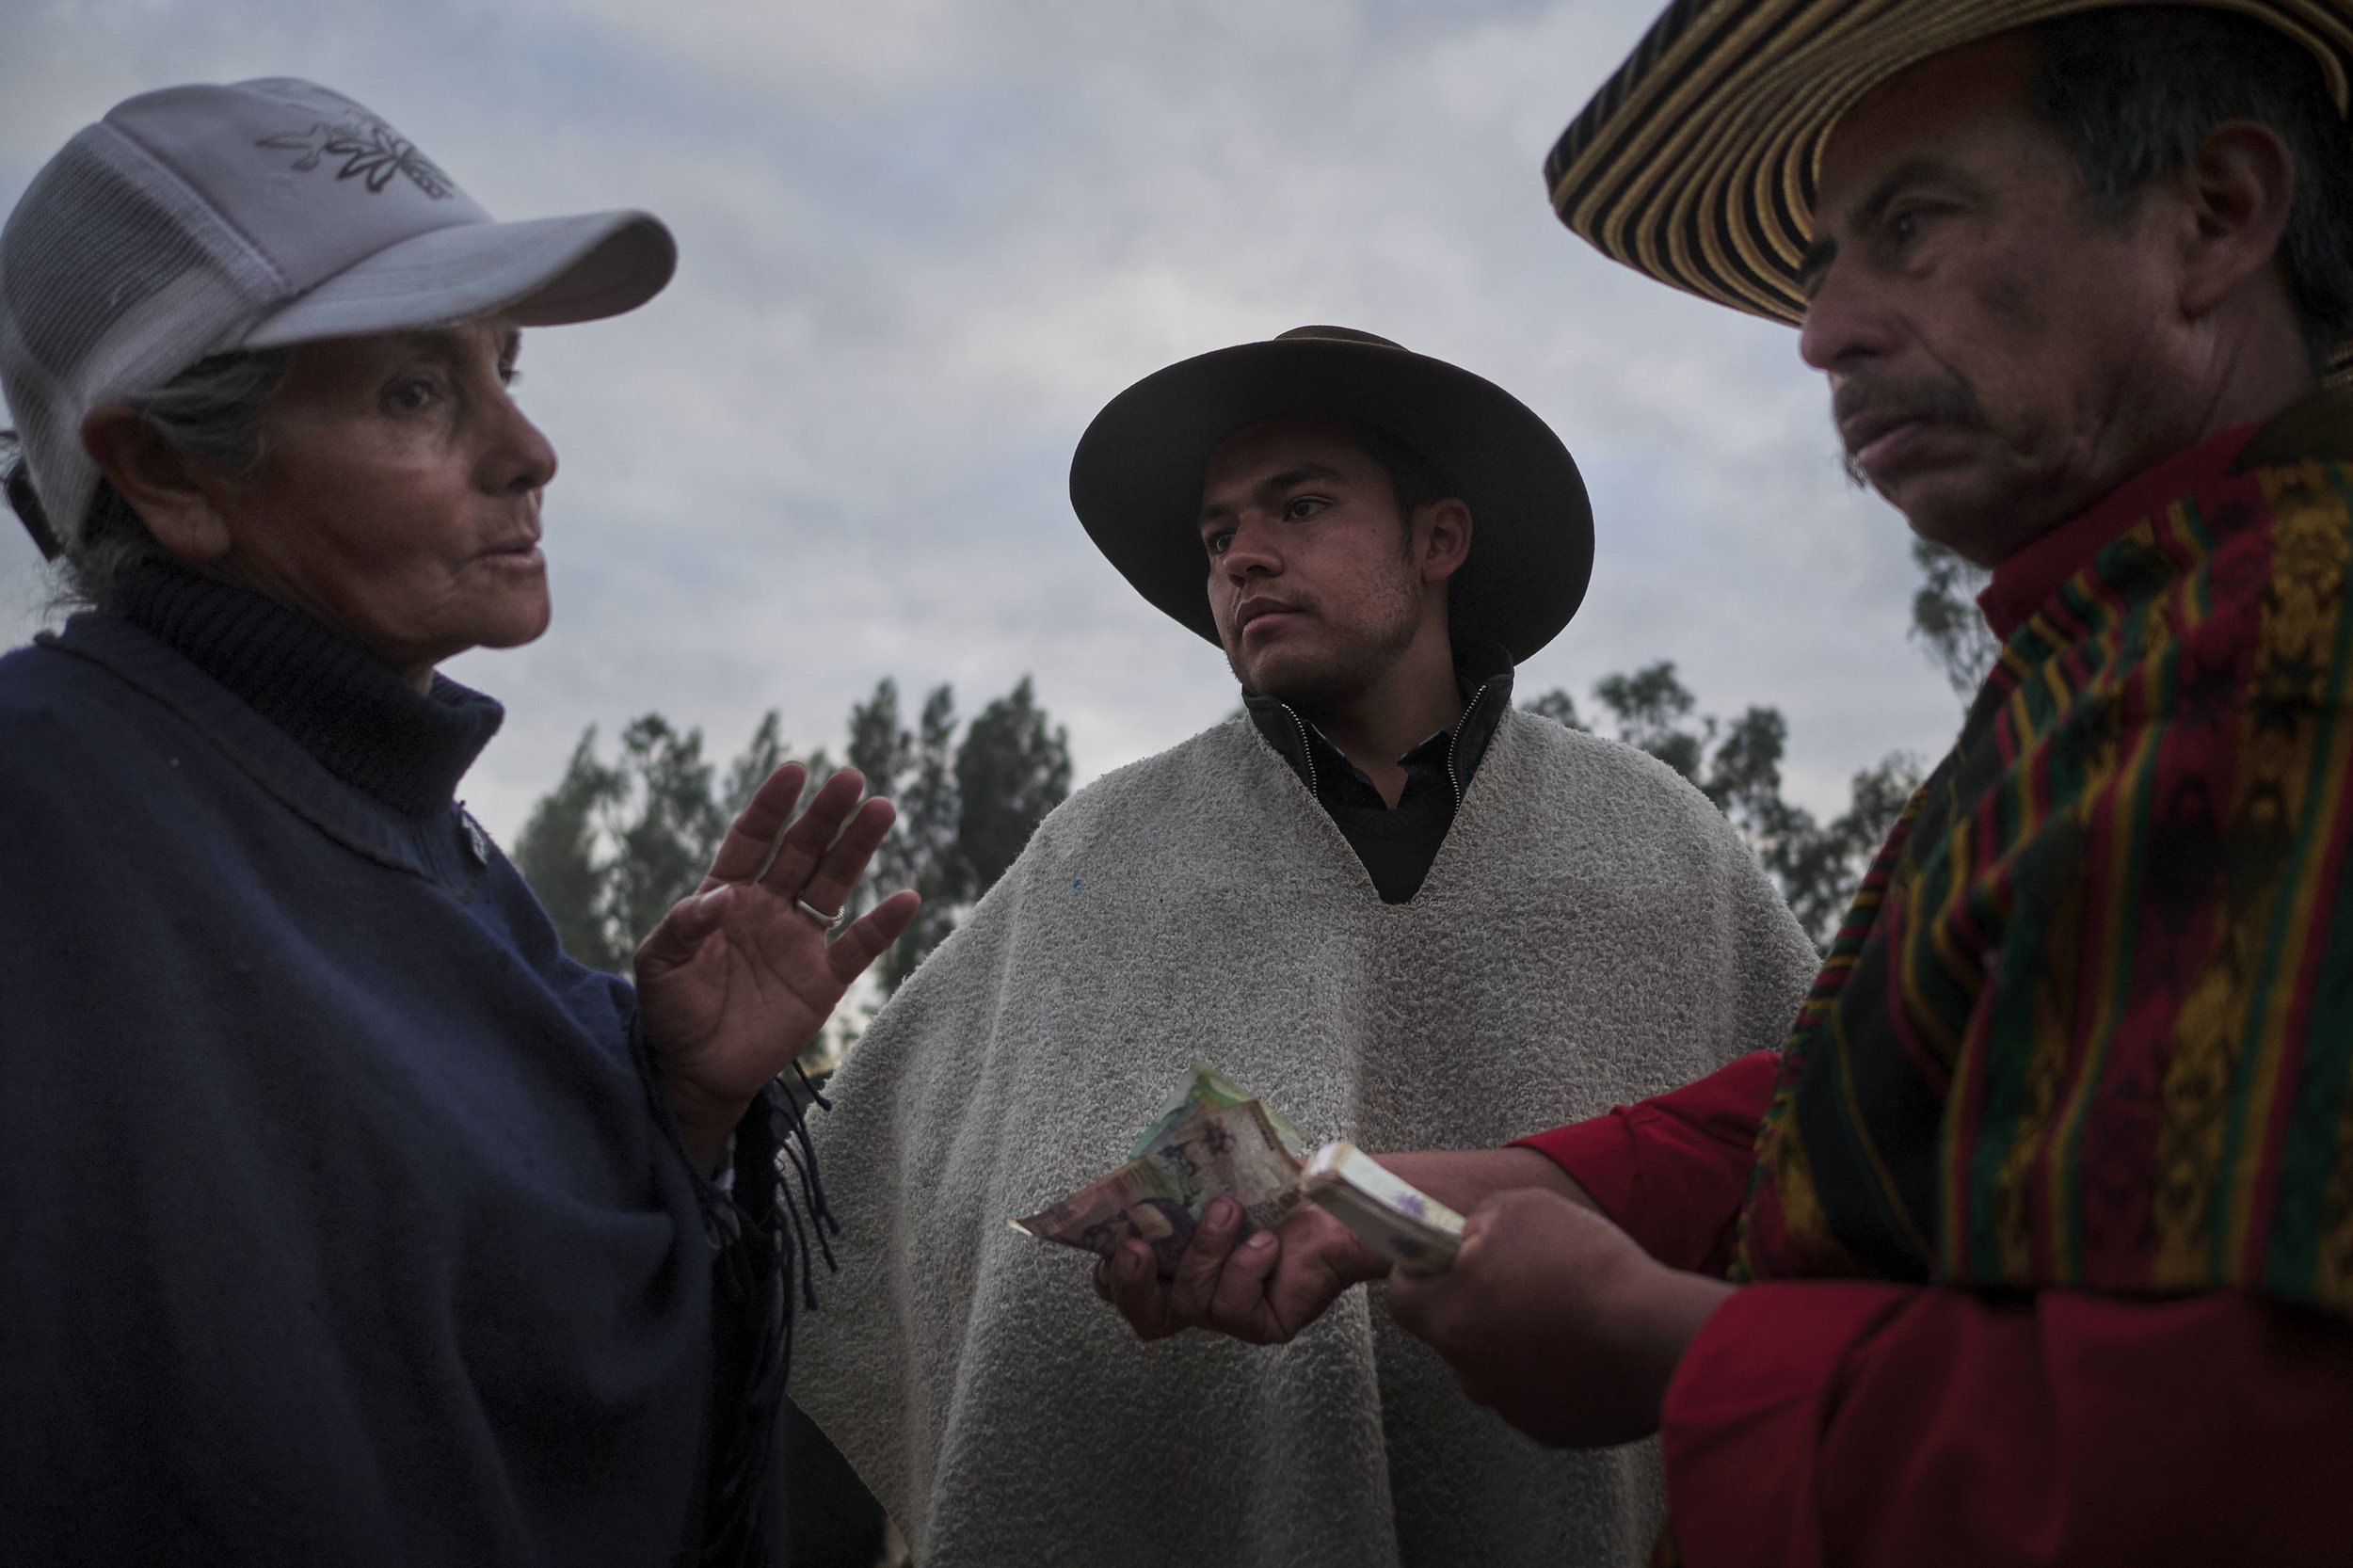 Bargaining at the animal market in Sogamoso, Boyaca, Colombia